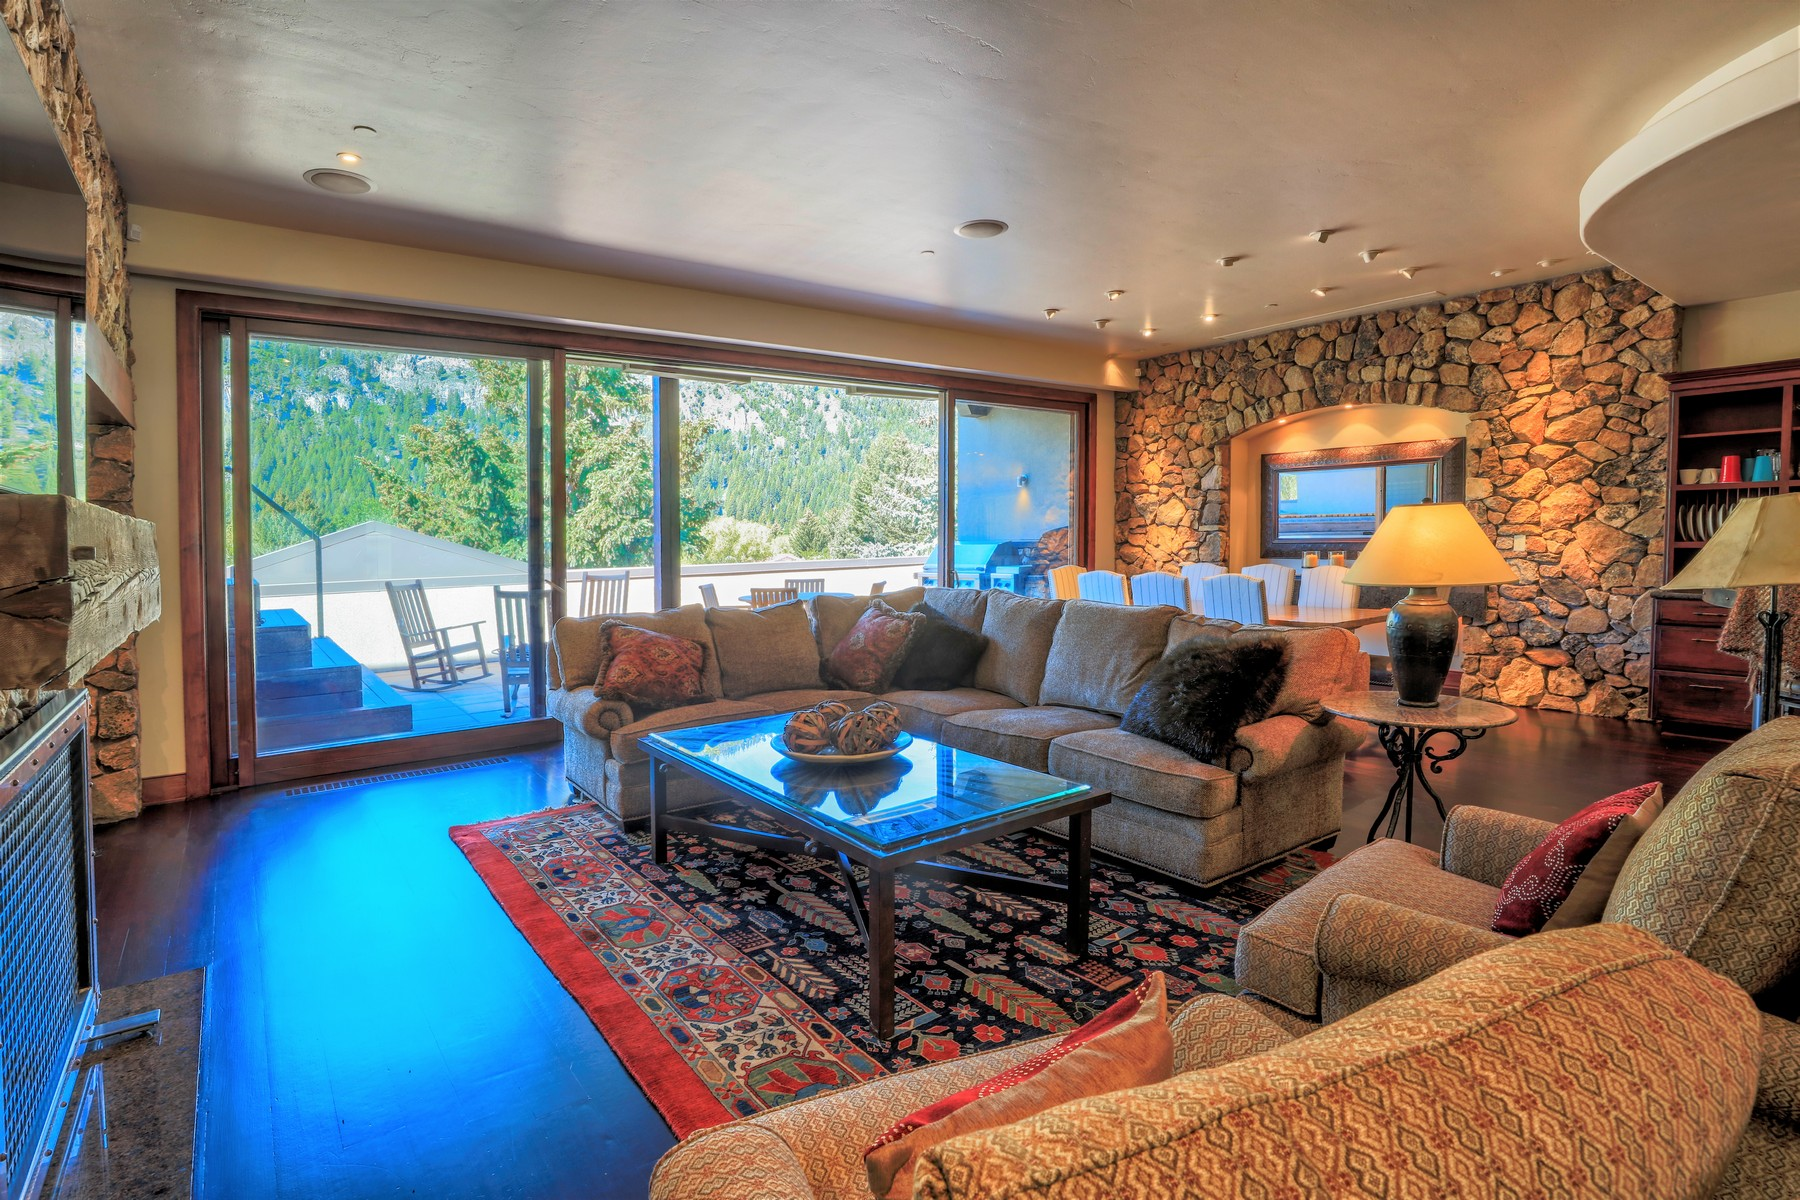 Additional photo for property listing at Elevating Expectations 120 N. 2nd Ave 301 Ketchum, Idaho 83340 États-Unis